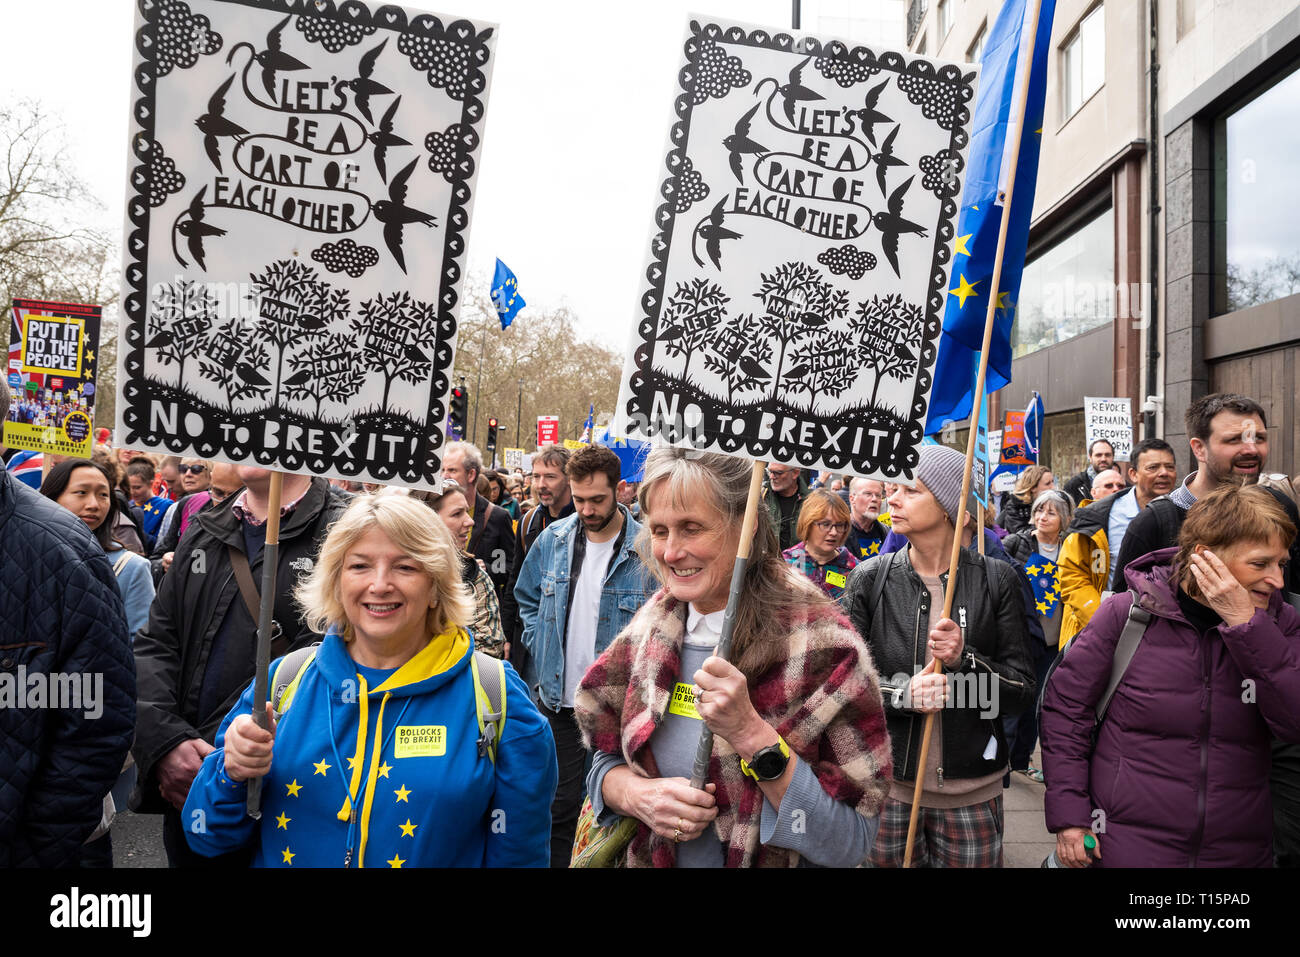 London, UK. March 23rd 2019. Put it to the People March. The Peoples Vote March formed up in Park Lane to march to Parliament Square. Up to a million protesters were  expected to march through central London demanding a Peoples Vote on any Brexit deal. Pictured, marchers in Piccadilly en route to Parliament Square. Credit: Stephen Bell/Alamy Live News - Stock Image